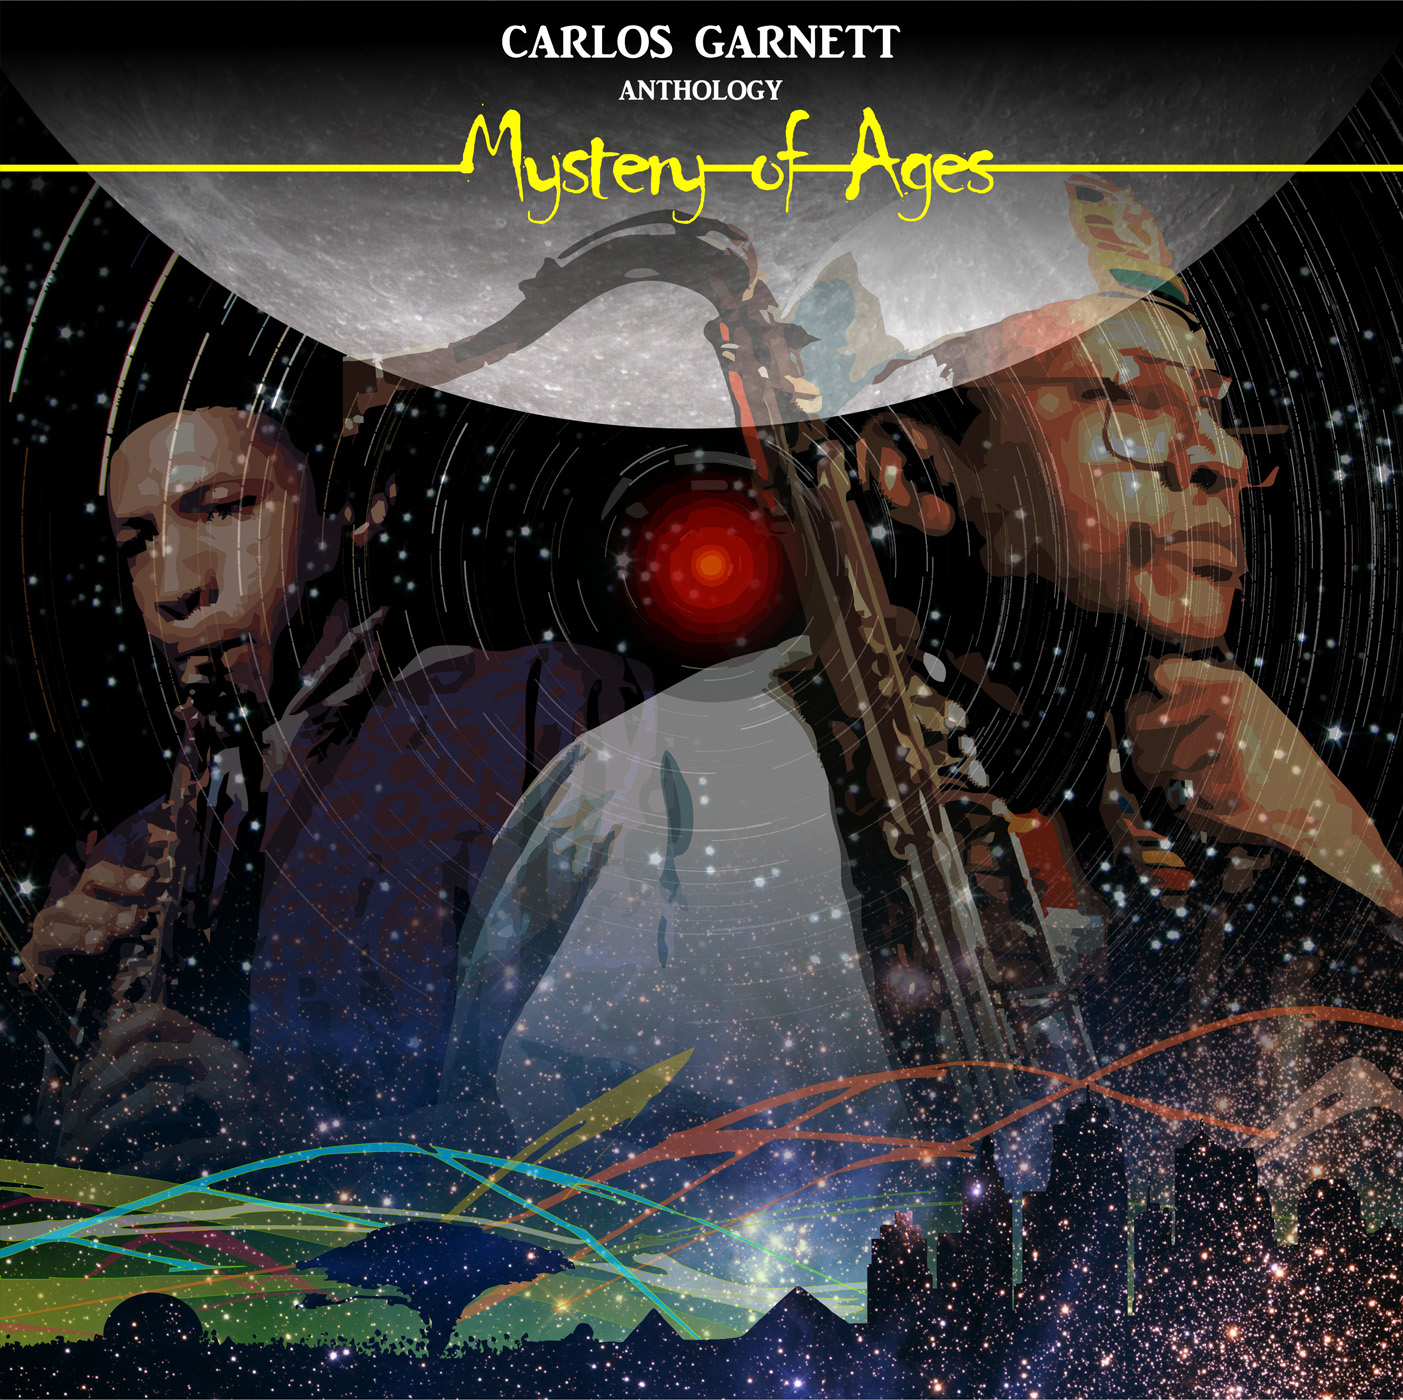 Carlos Garnett/ANTHOLOGY (RSD) DLP